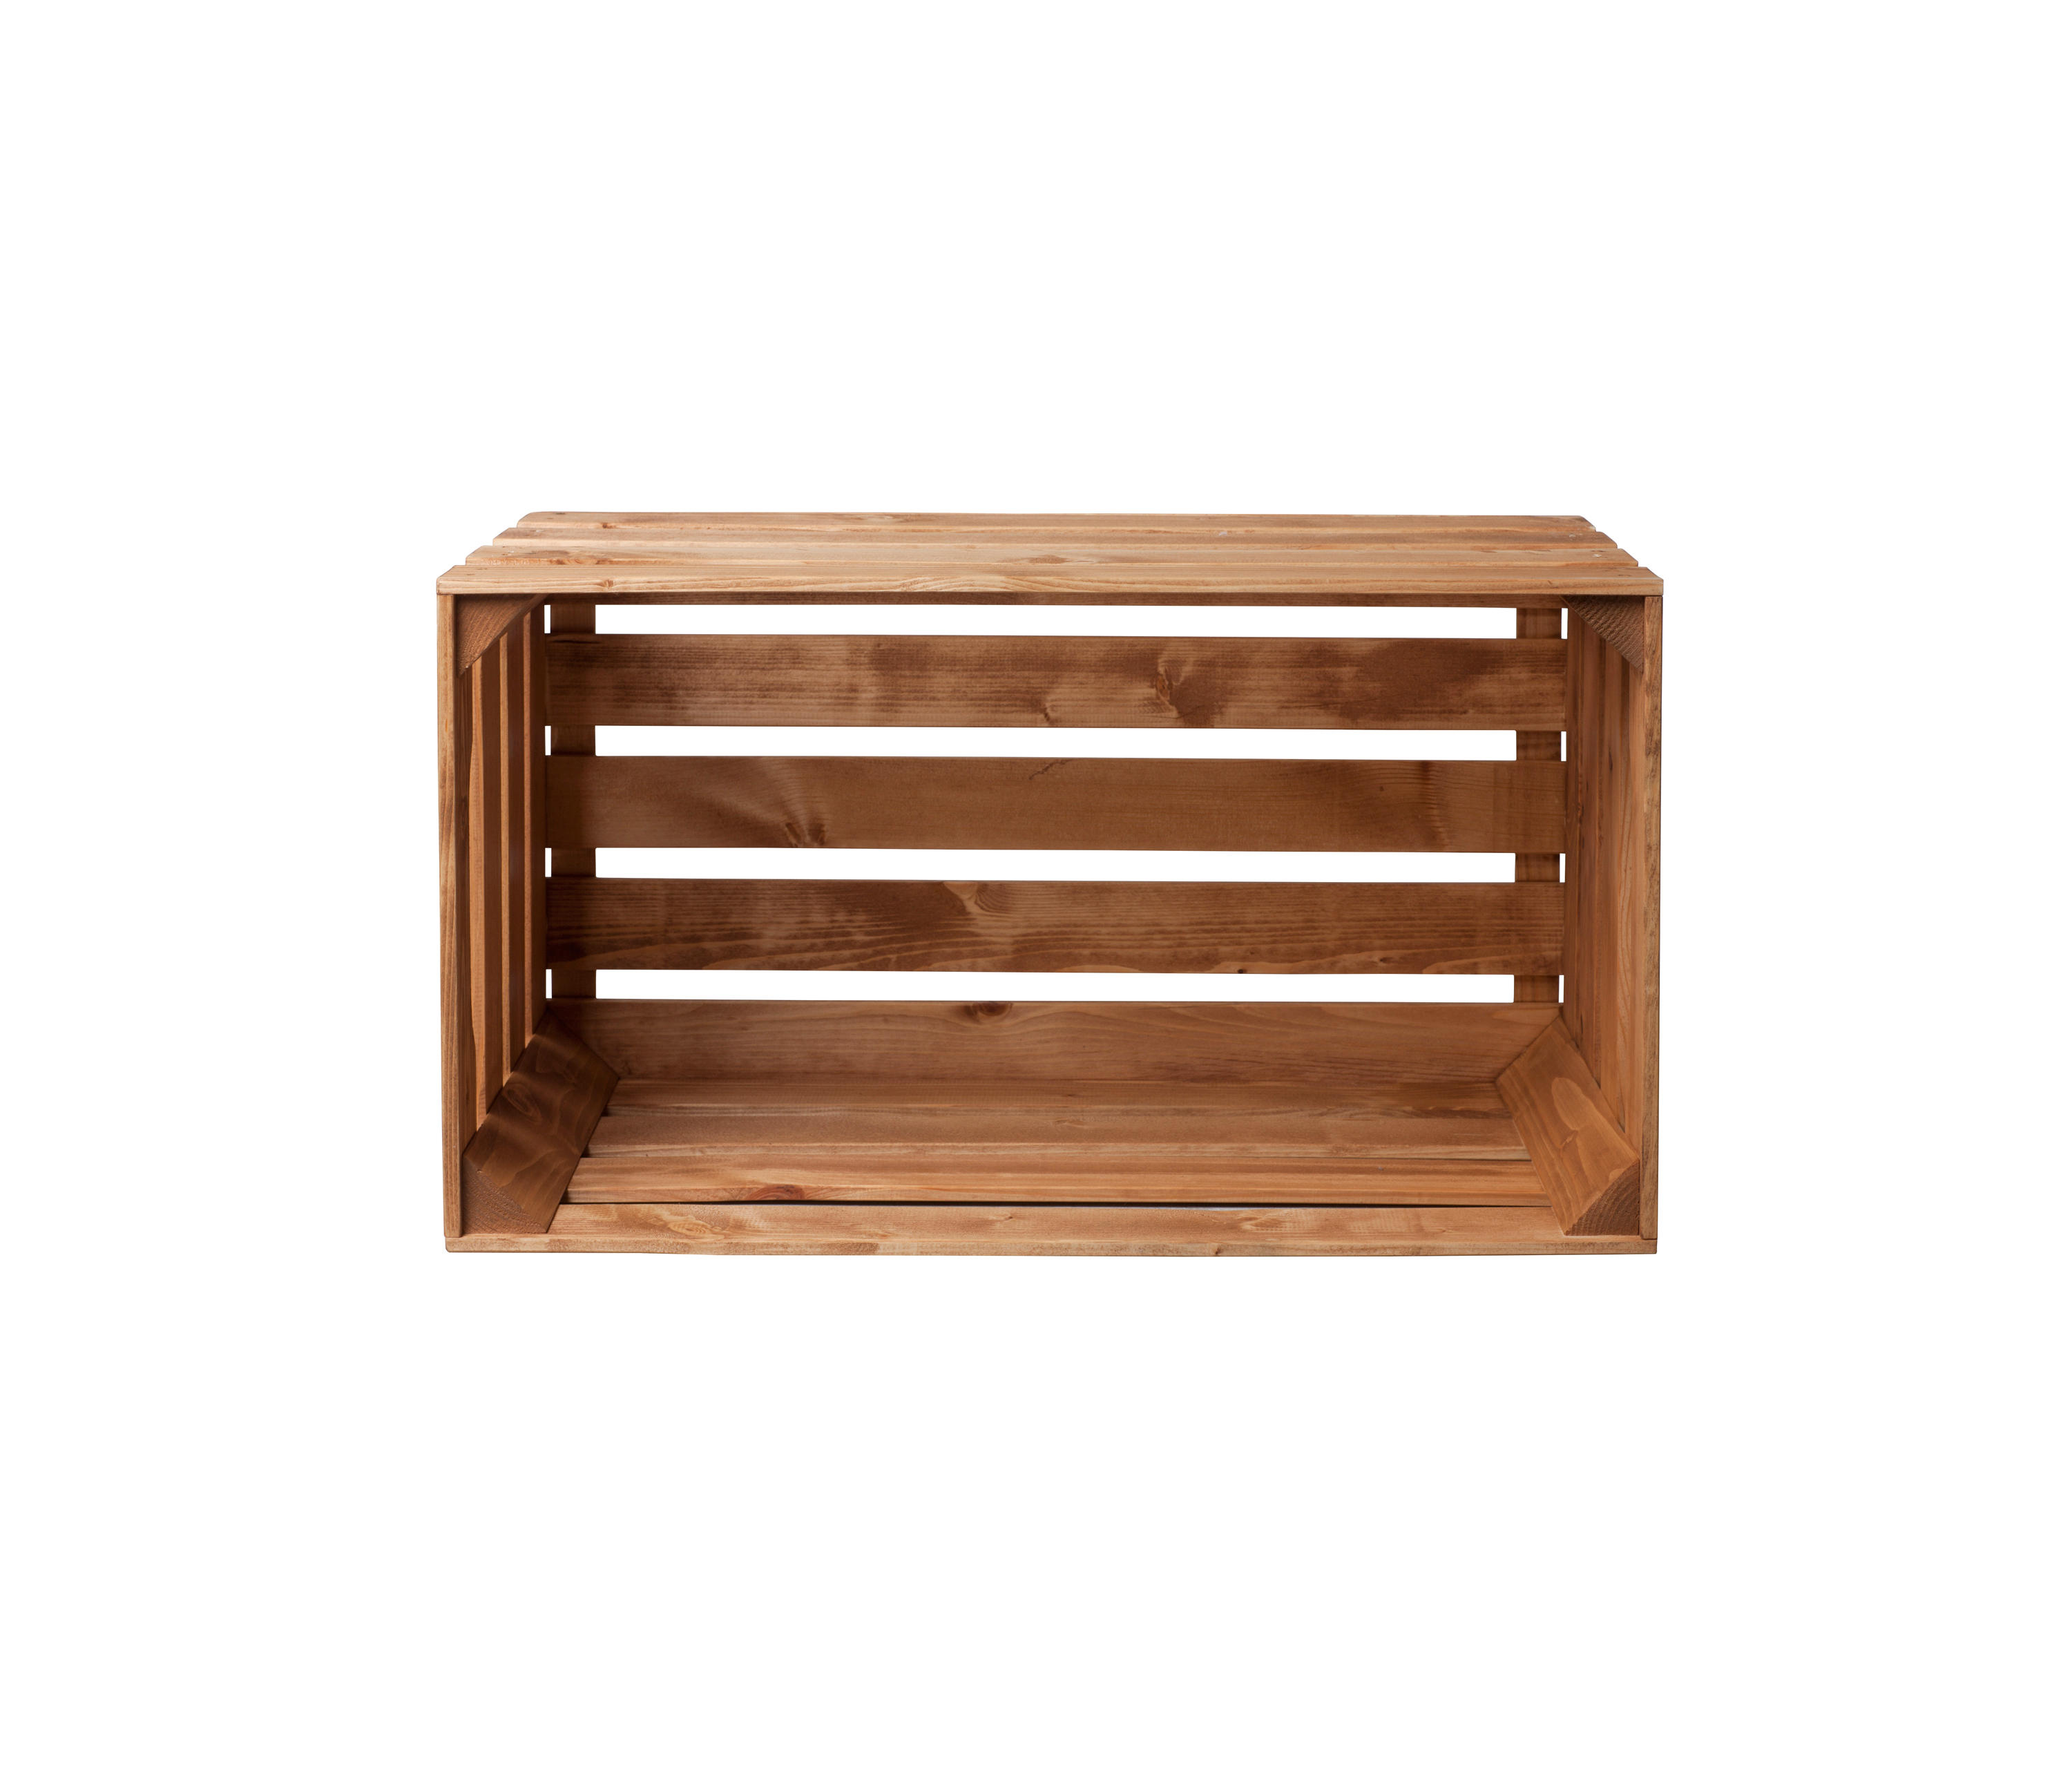 good bench pin house the seating back for wooden along as doubles storage crate toy yard idea